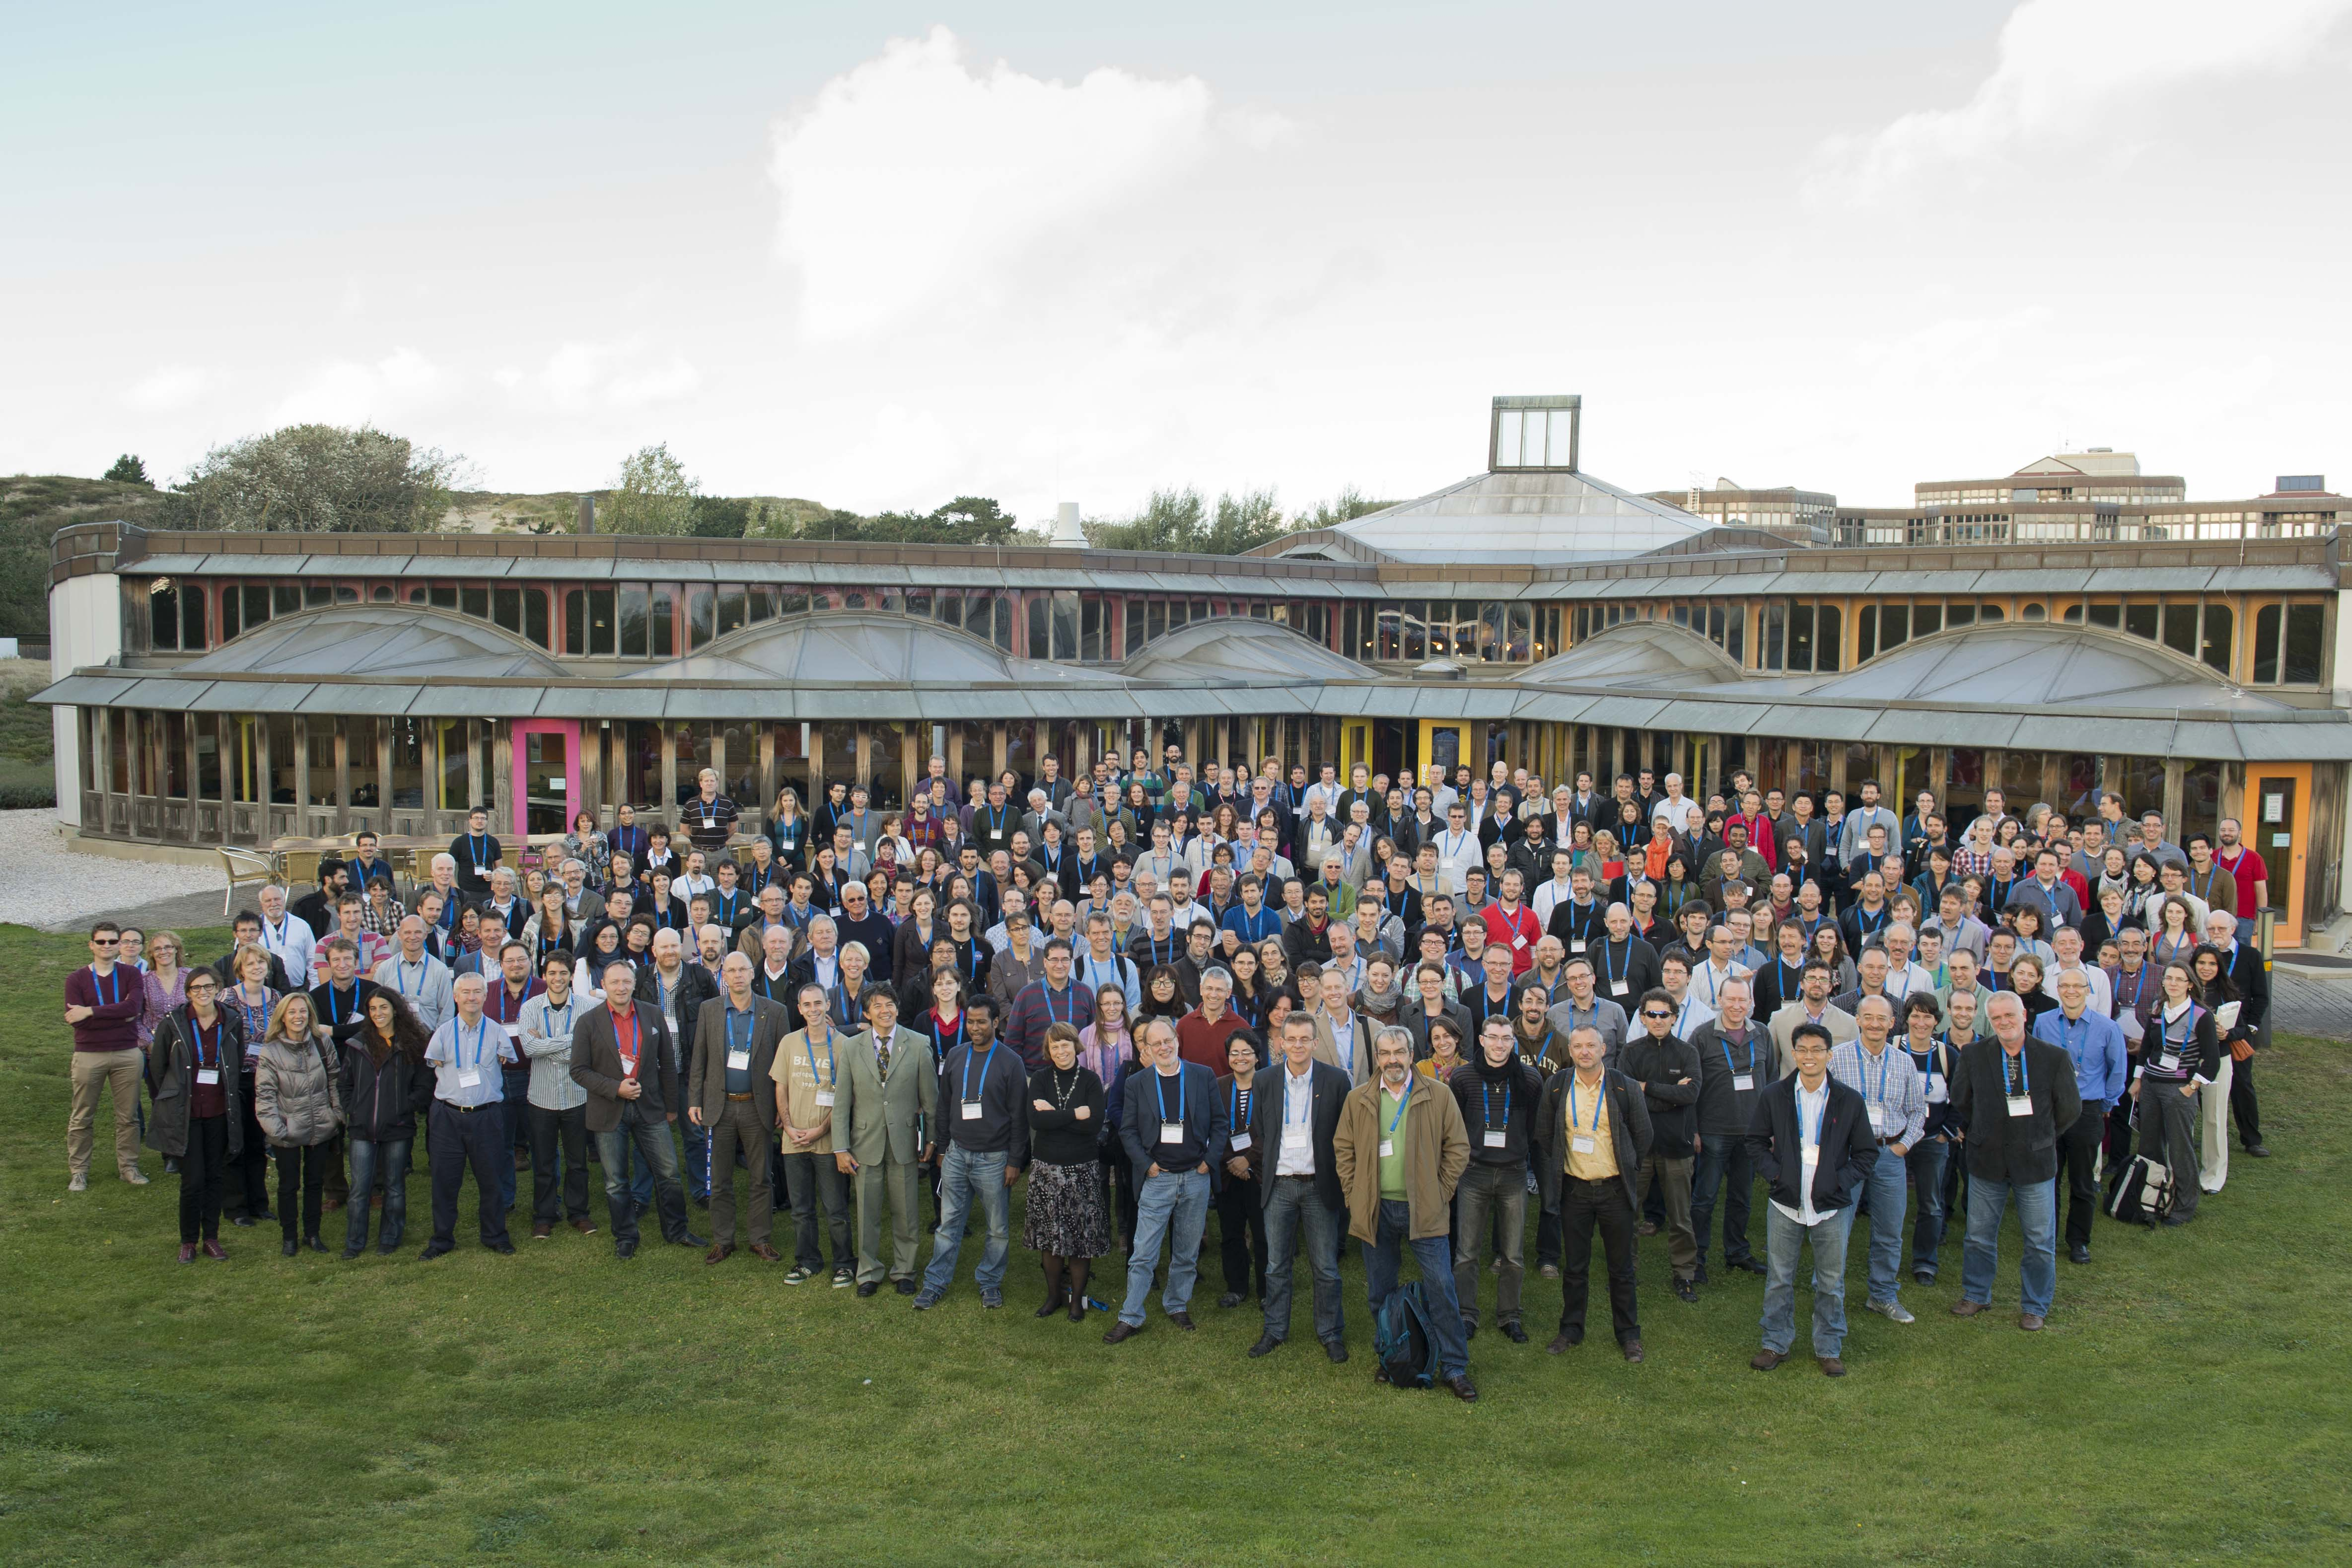 Participants of the symposium 'The Universe Explored by Herschel' held on 15-18 October 2013 at ESA/ESTEC, Noordwijk, The Netherlands